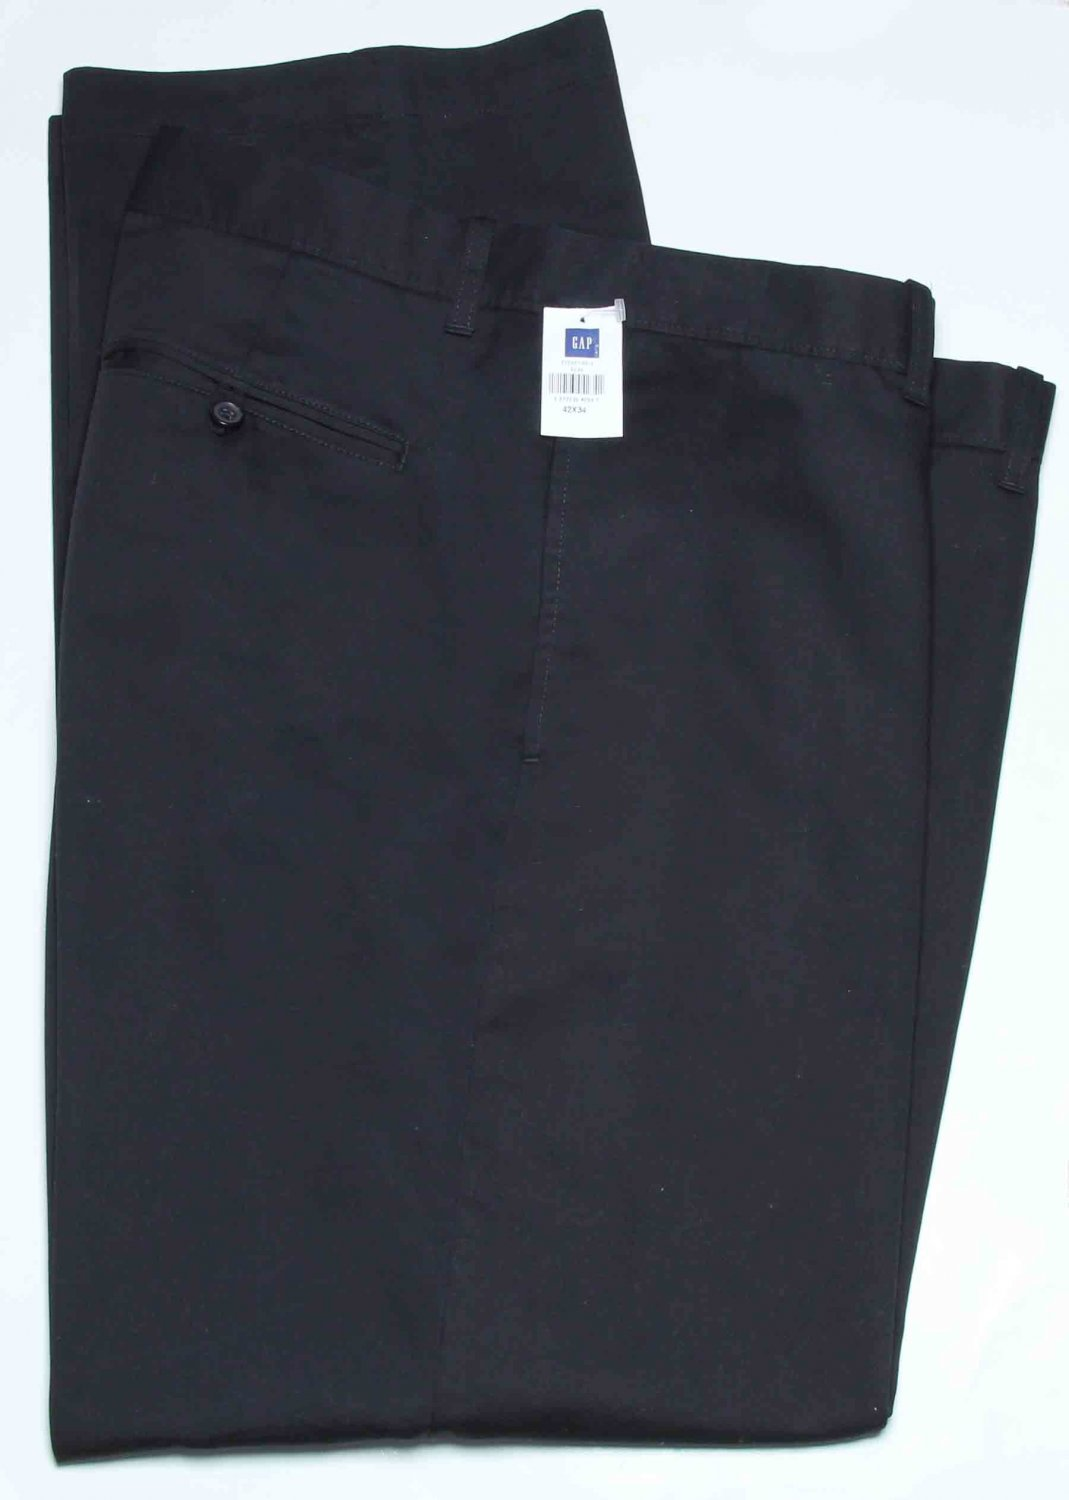 Men's Gap Pants Black Chinos Flat Front Relaxed Fit Size 42 X 34